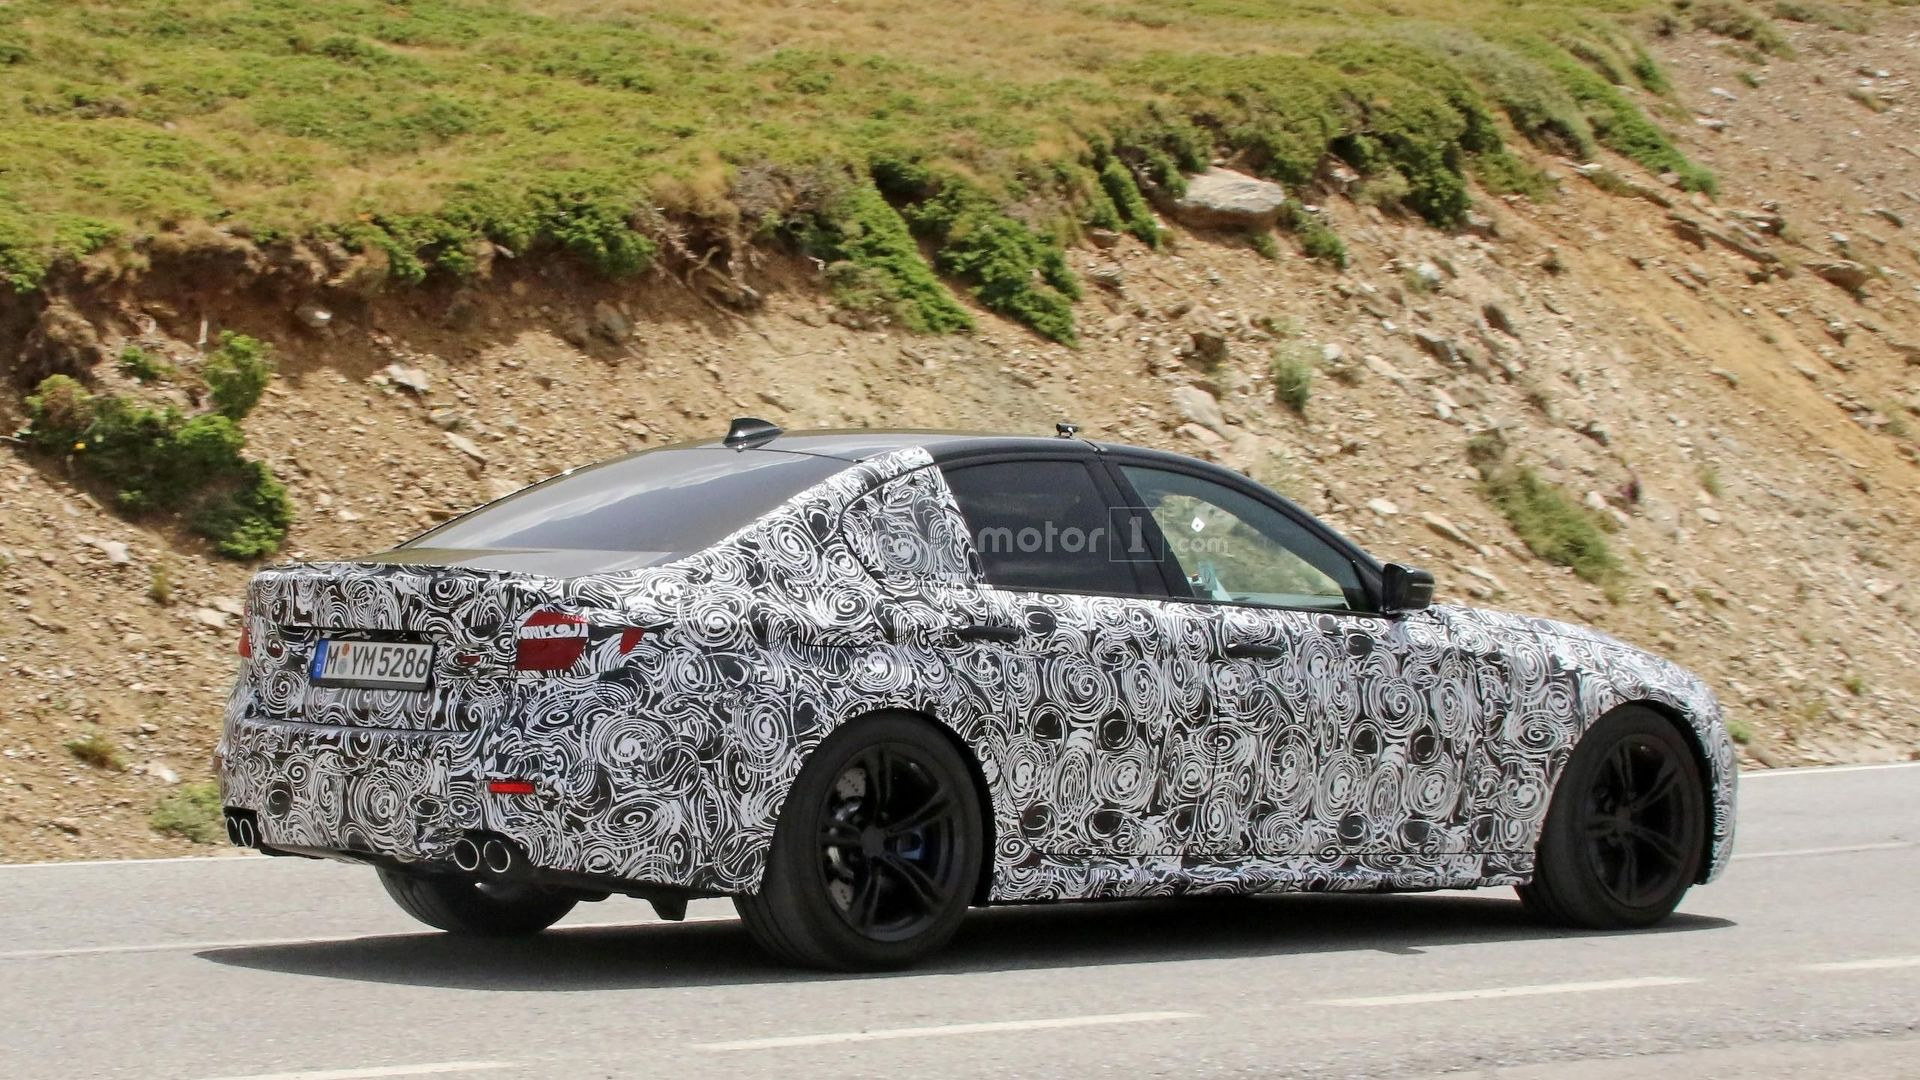 2018 Bmw M5 Spy Photo Foto Motor1 Com France